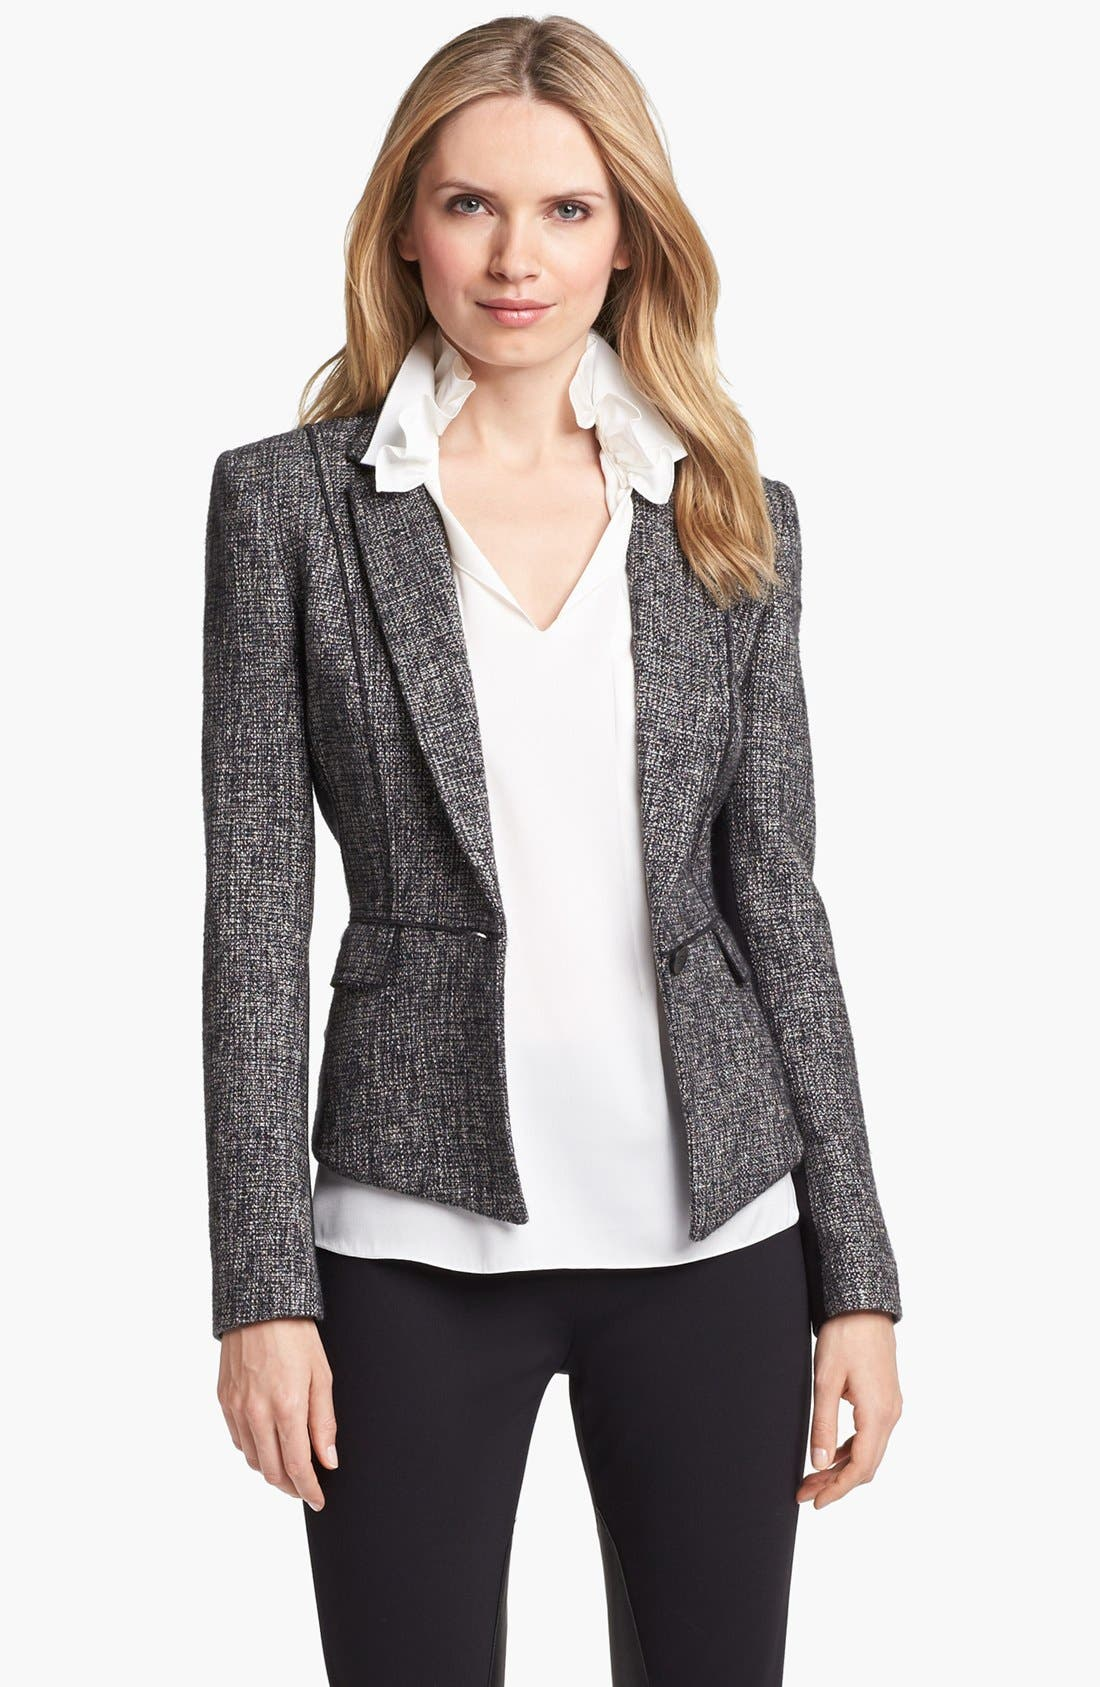 Main Image - Elie Tahari 'Minka' Metallic Tweed Jacket